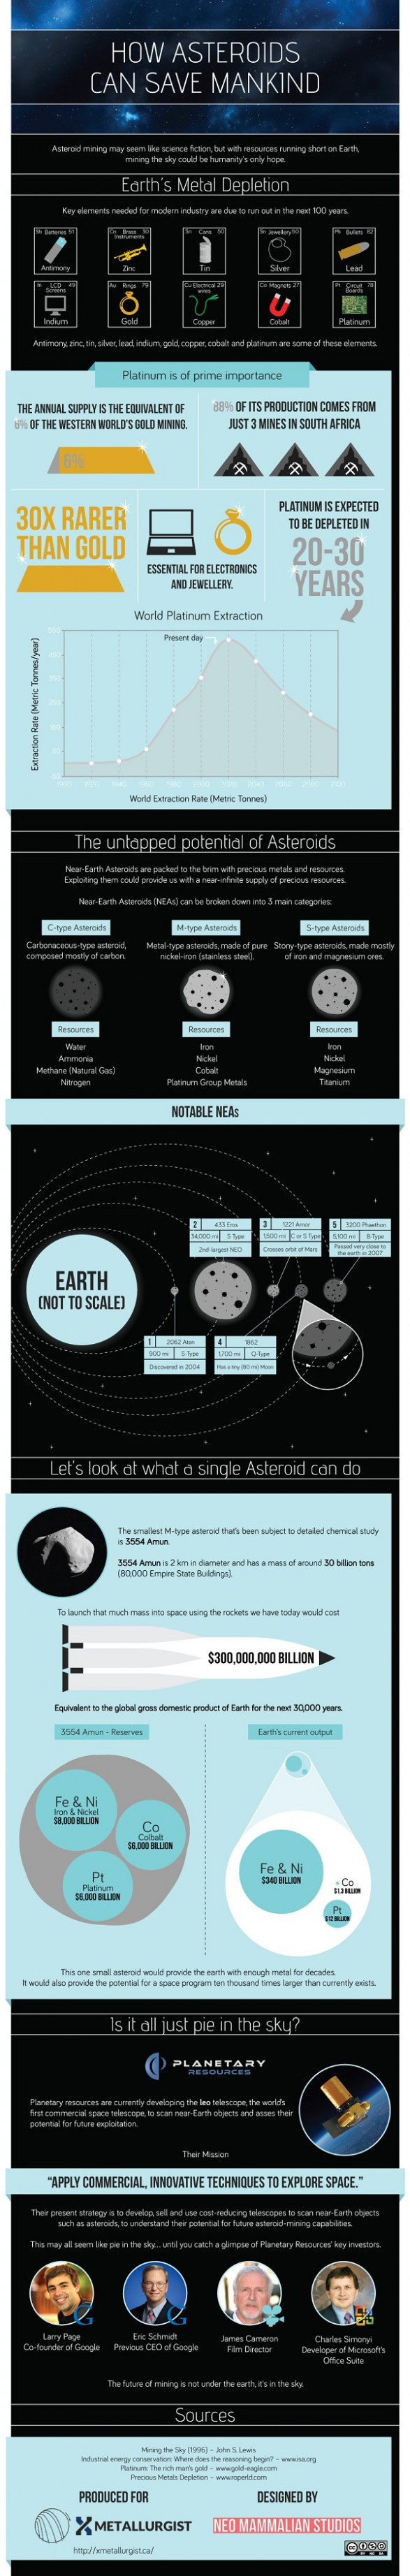 How Asteroids Can Save Mankind